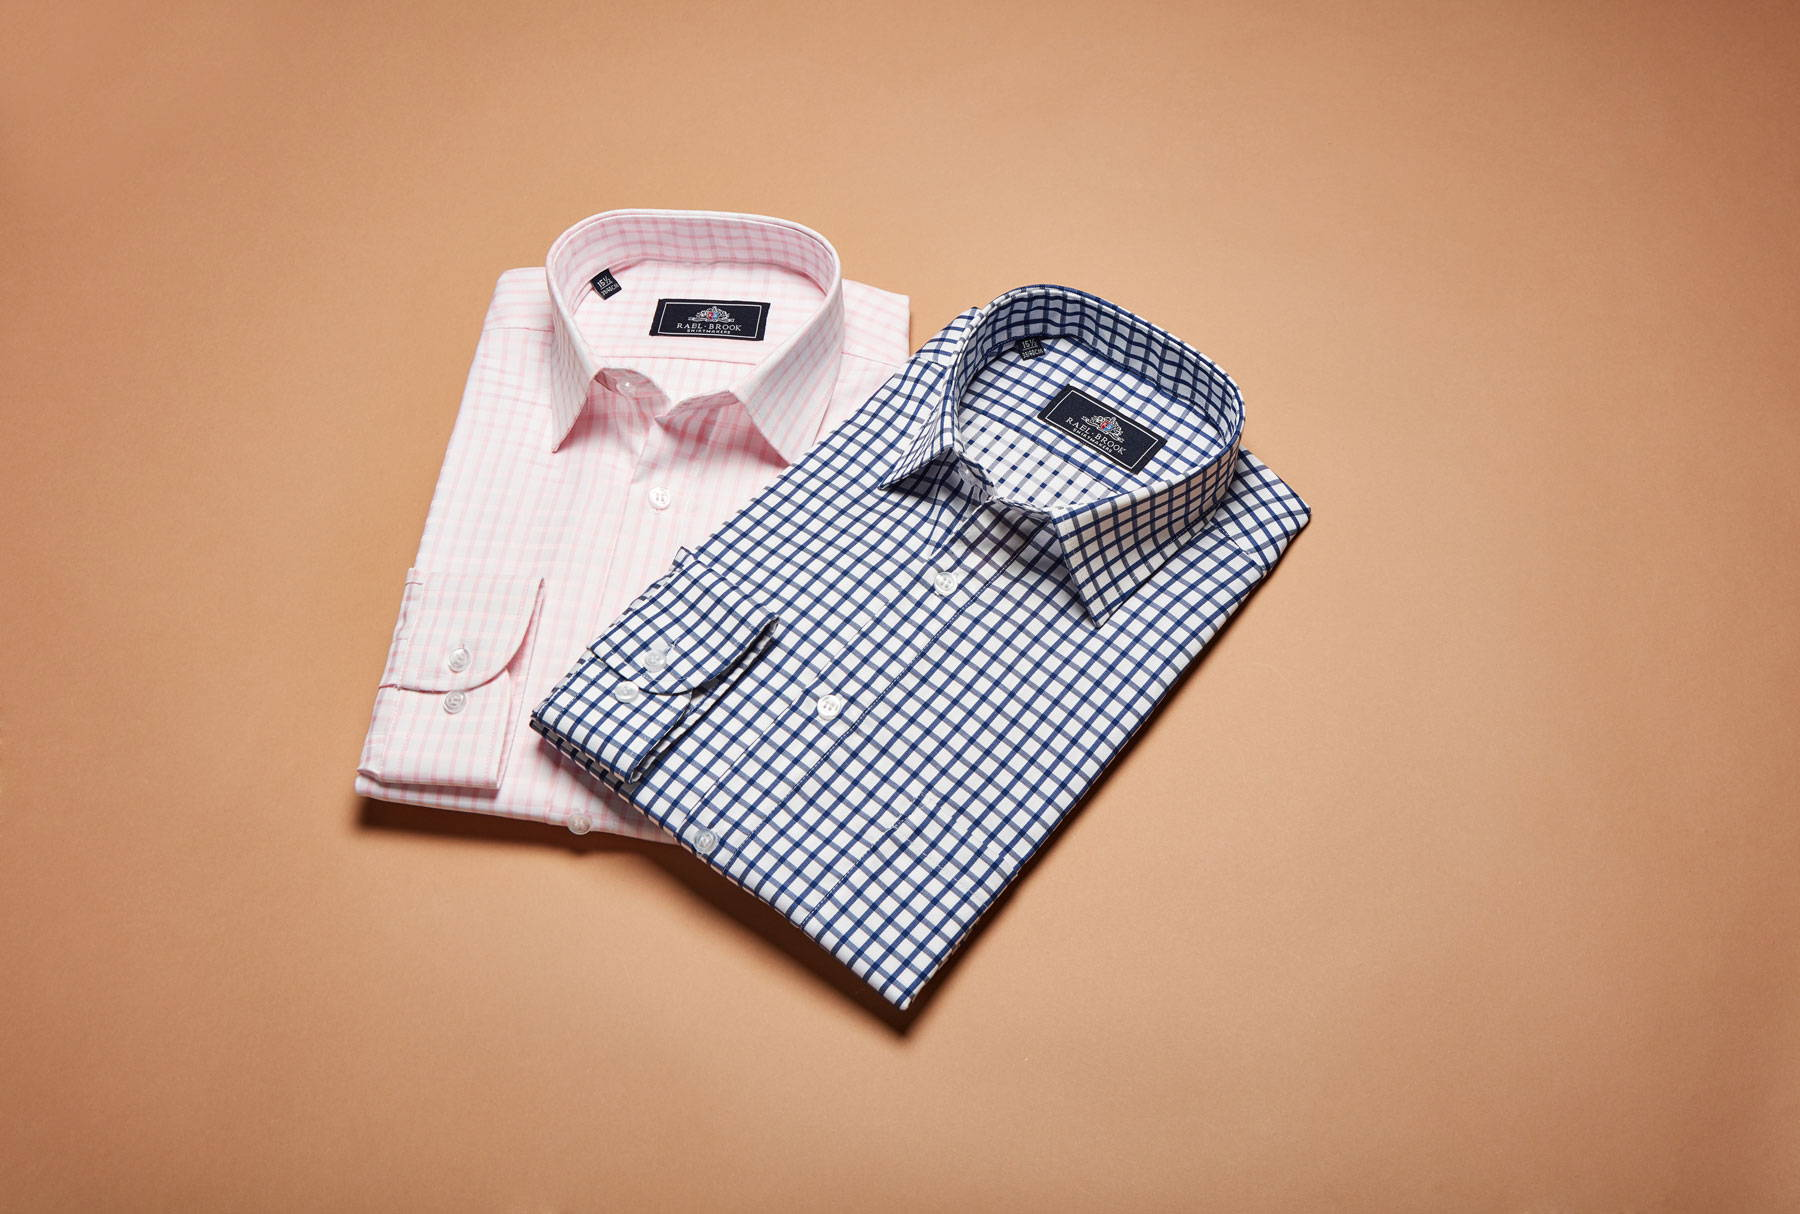 Pink and blue checked shirts laid flat